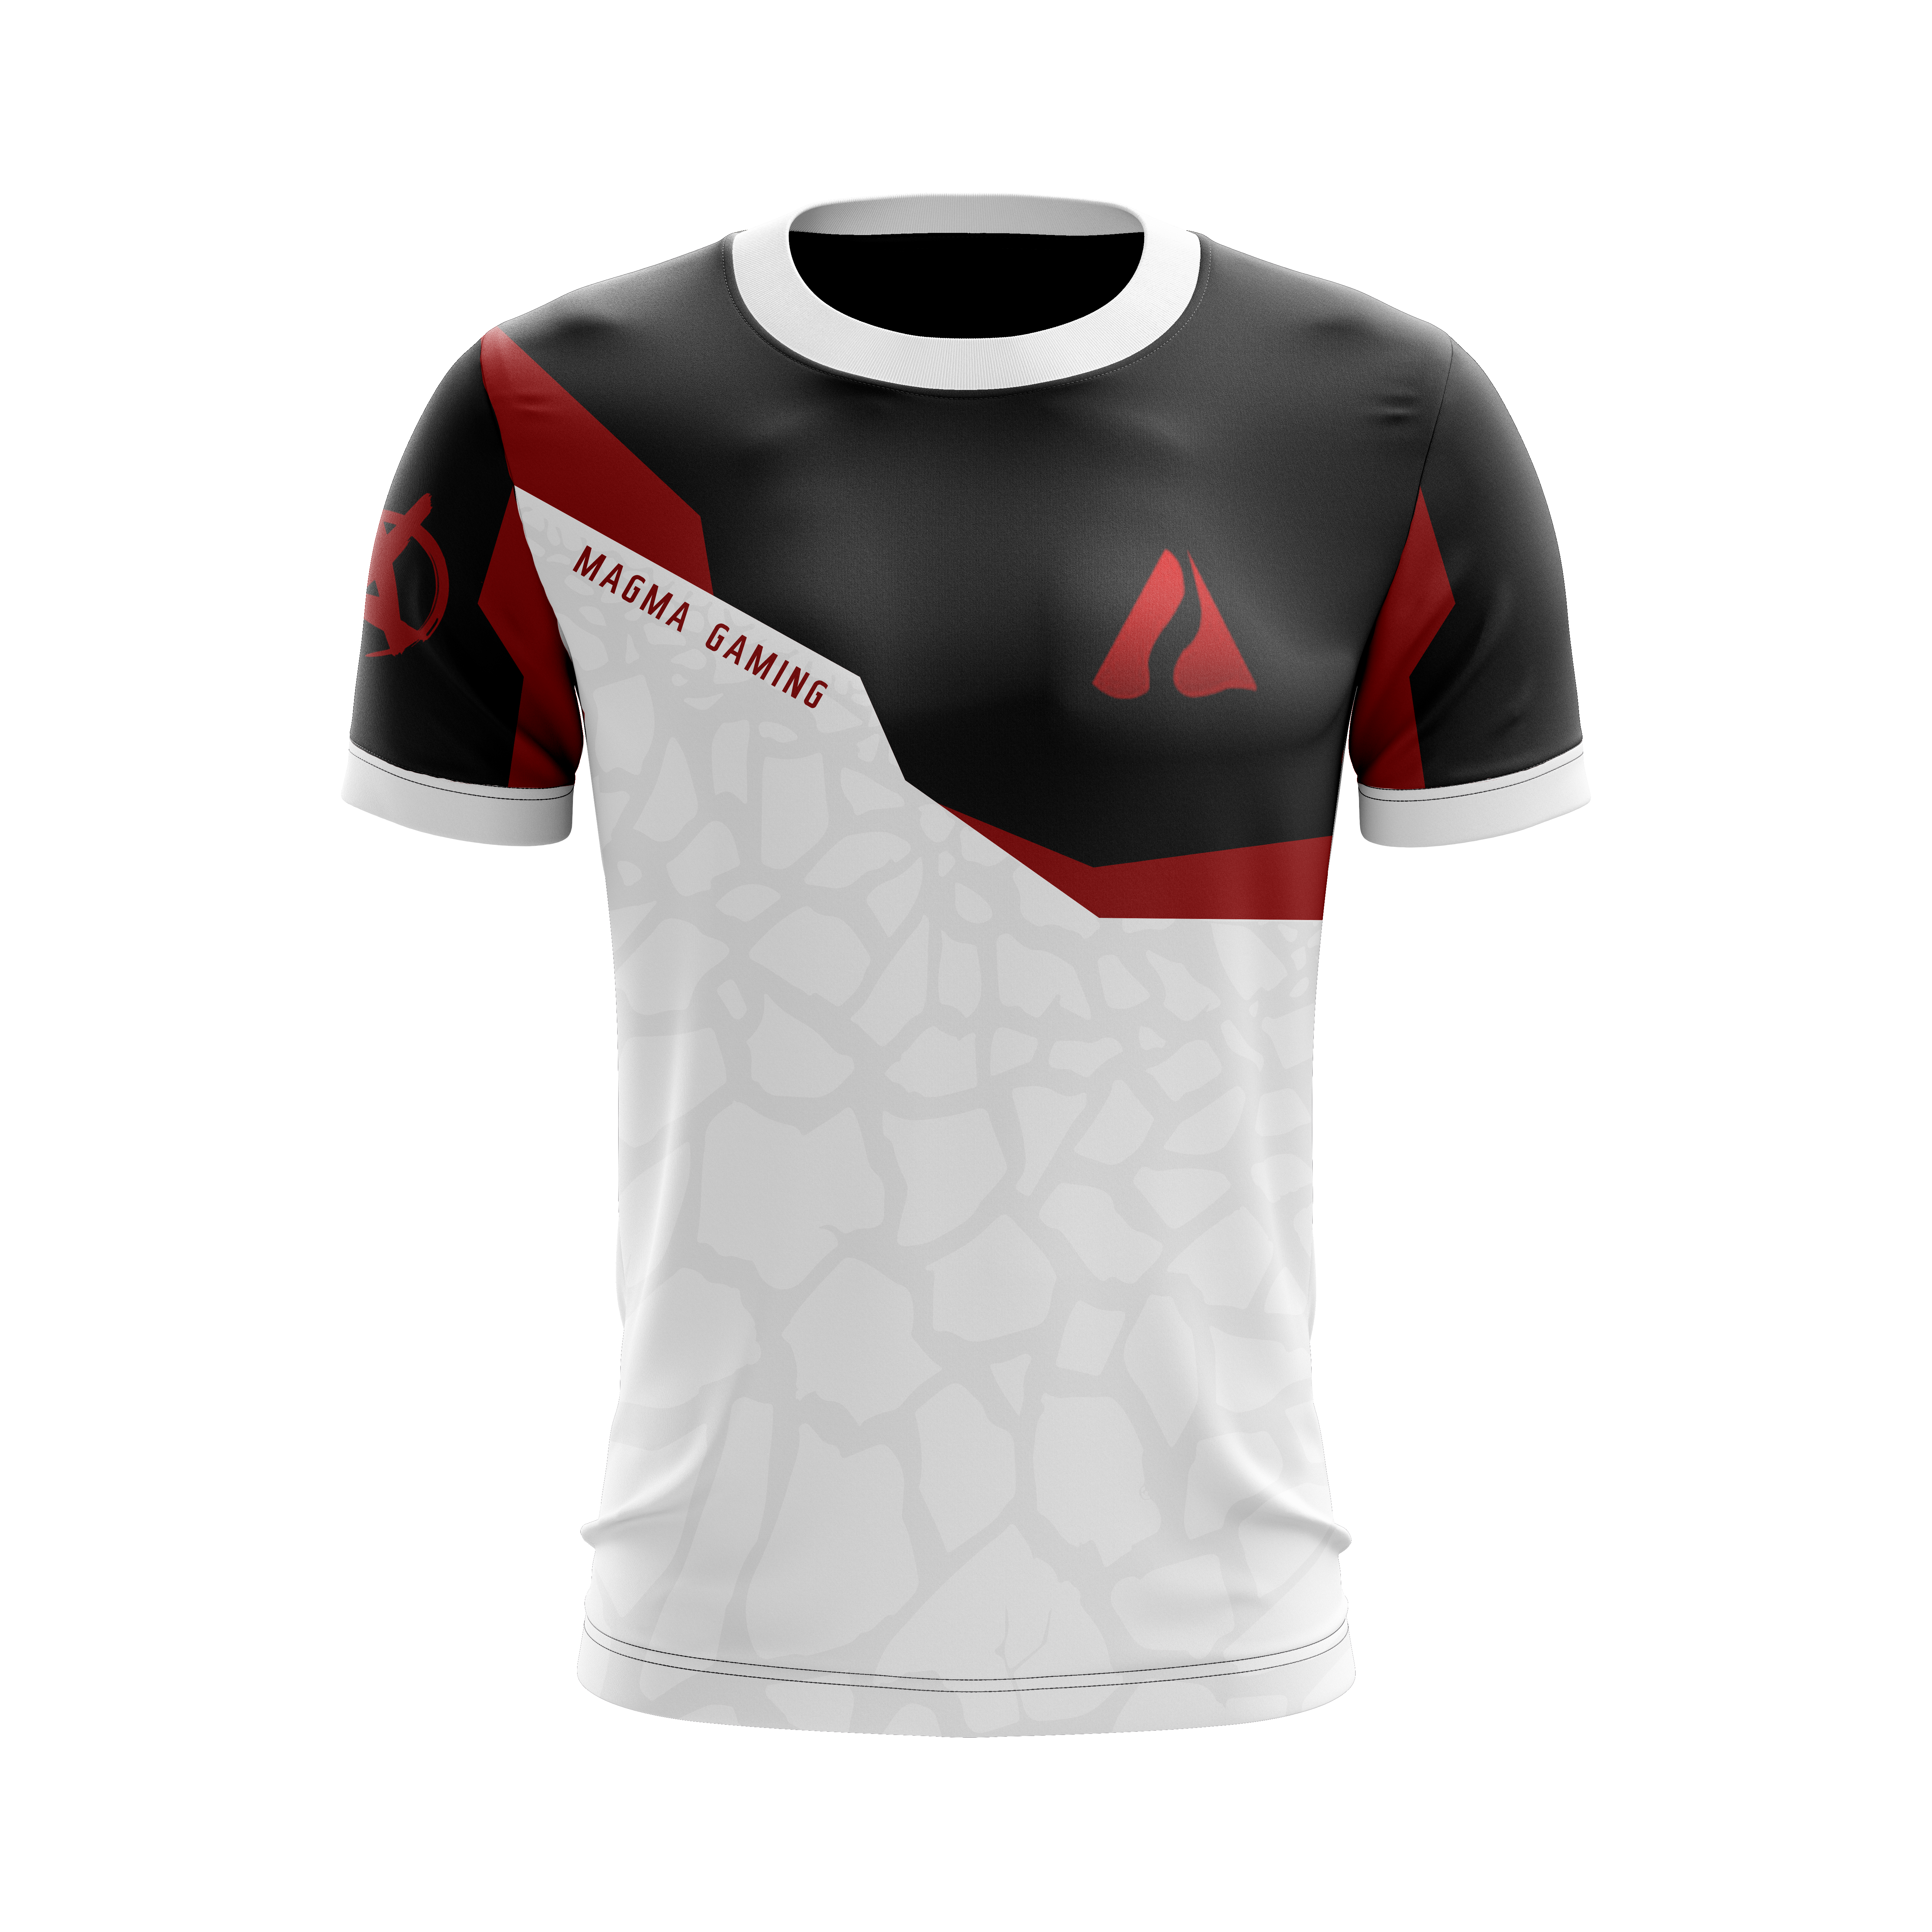 Magma – Official 2021 Team Jersey